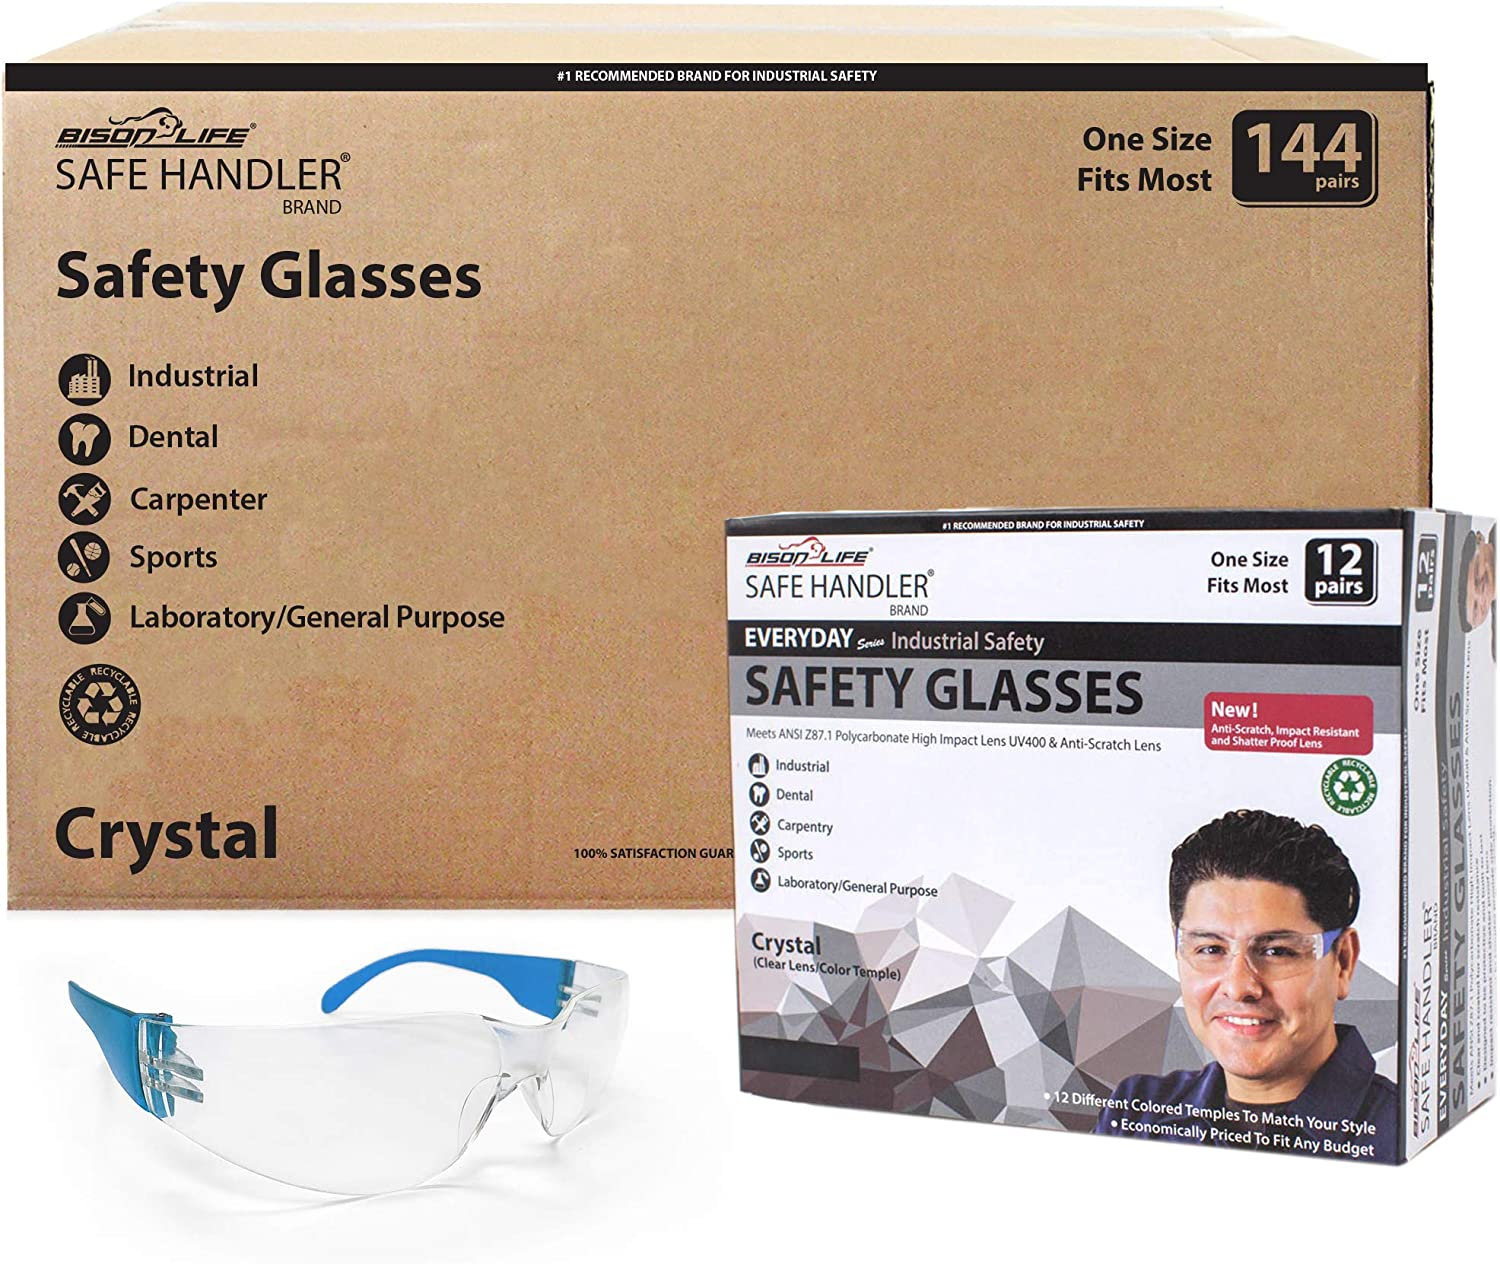 SAFE HANDLER Protective Safety Glasses - Clear Polycarbonate Impact and Ballistic Resistant Lens, BLUE Temple (Case of 12 Boxes, 144 PAIRS)